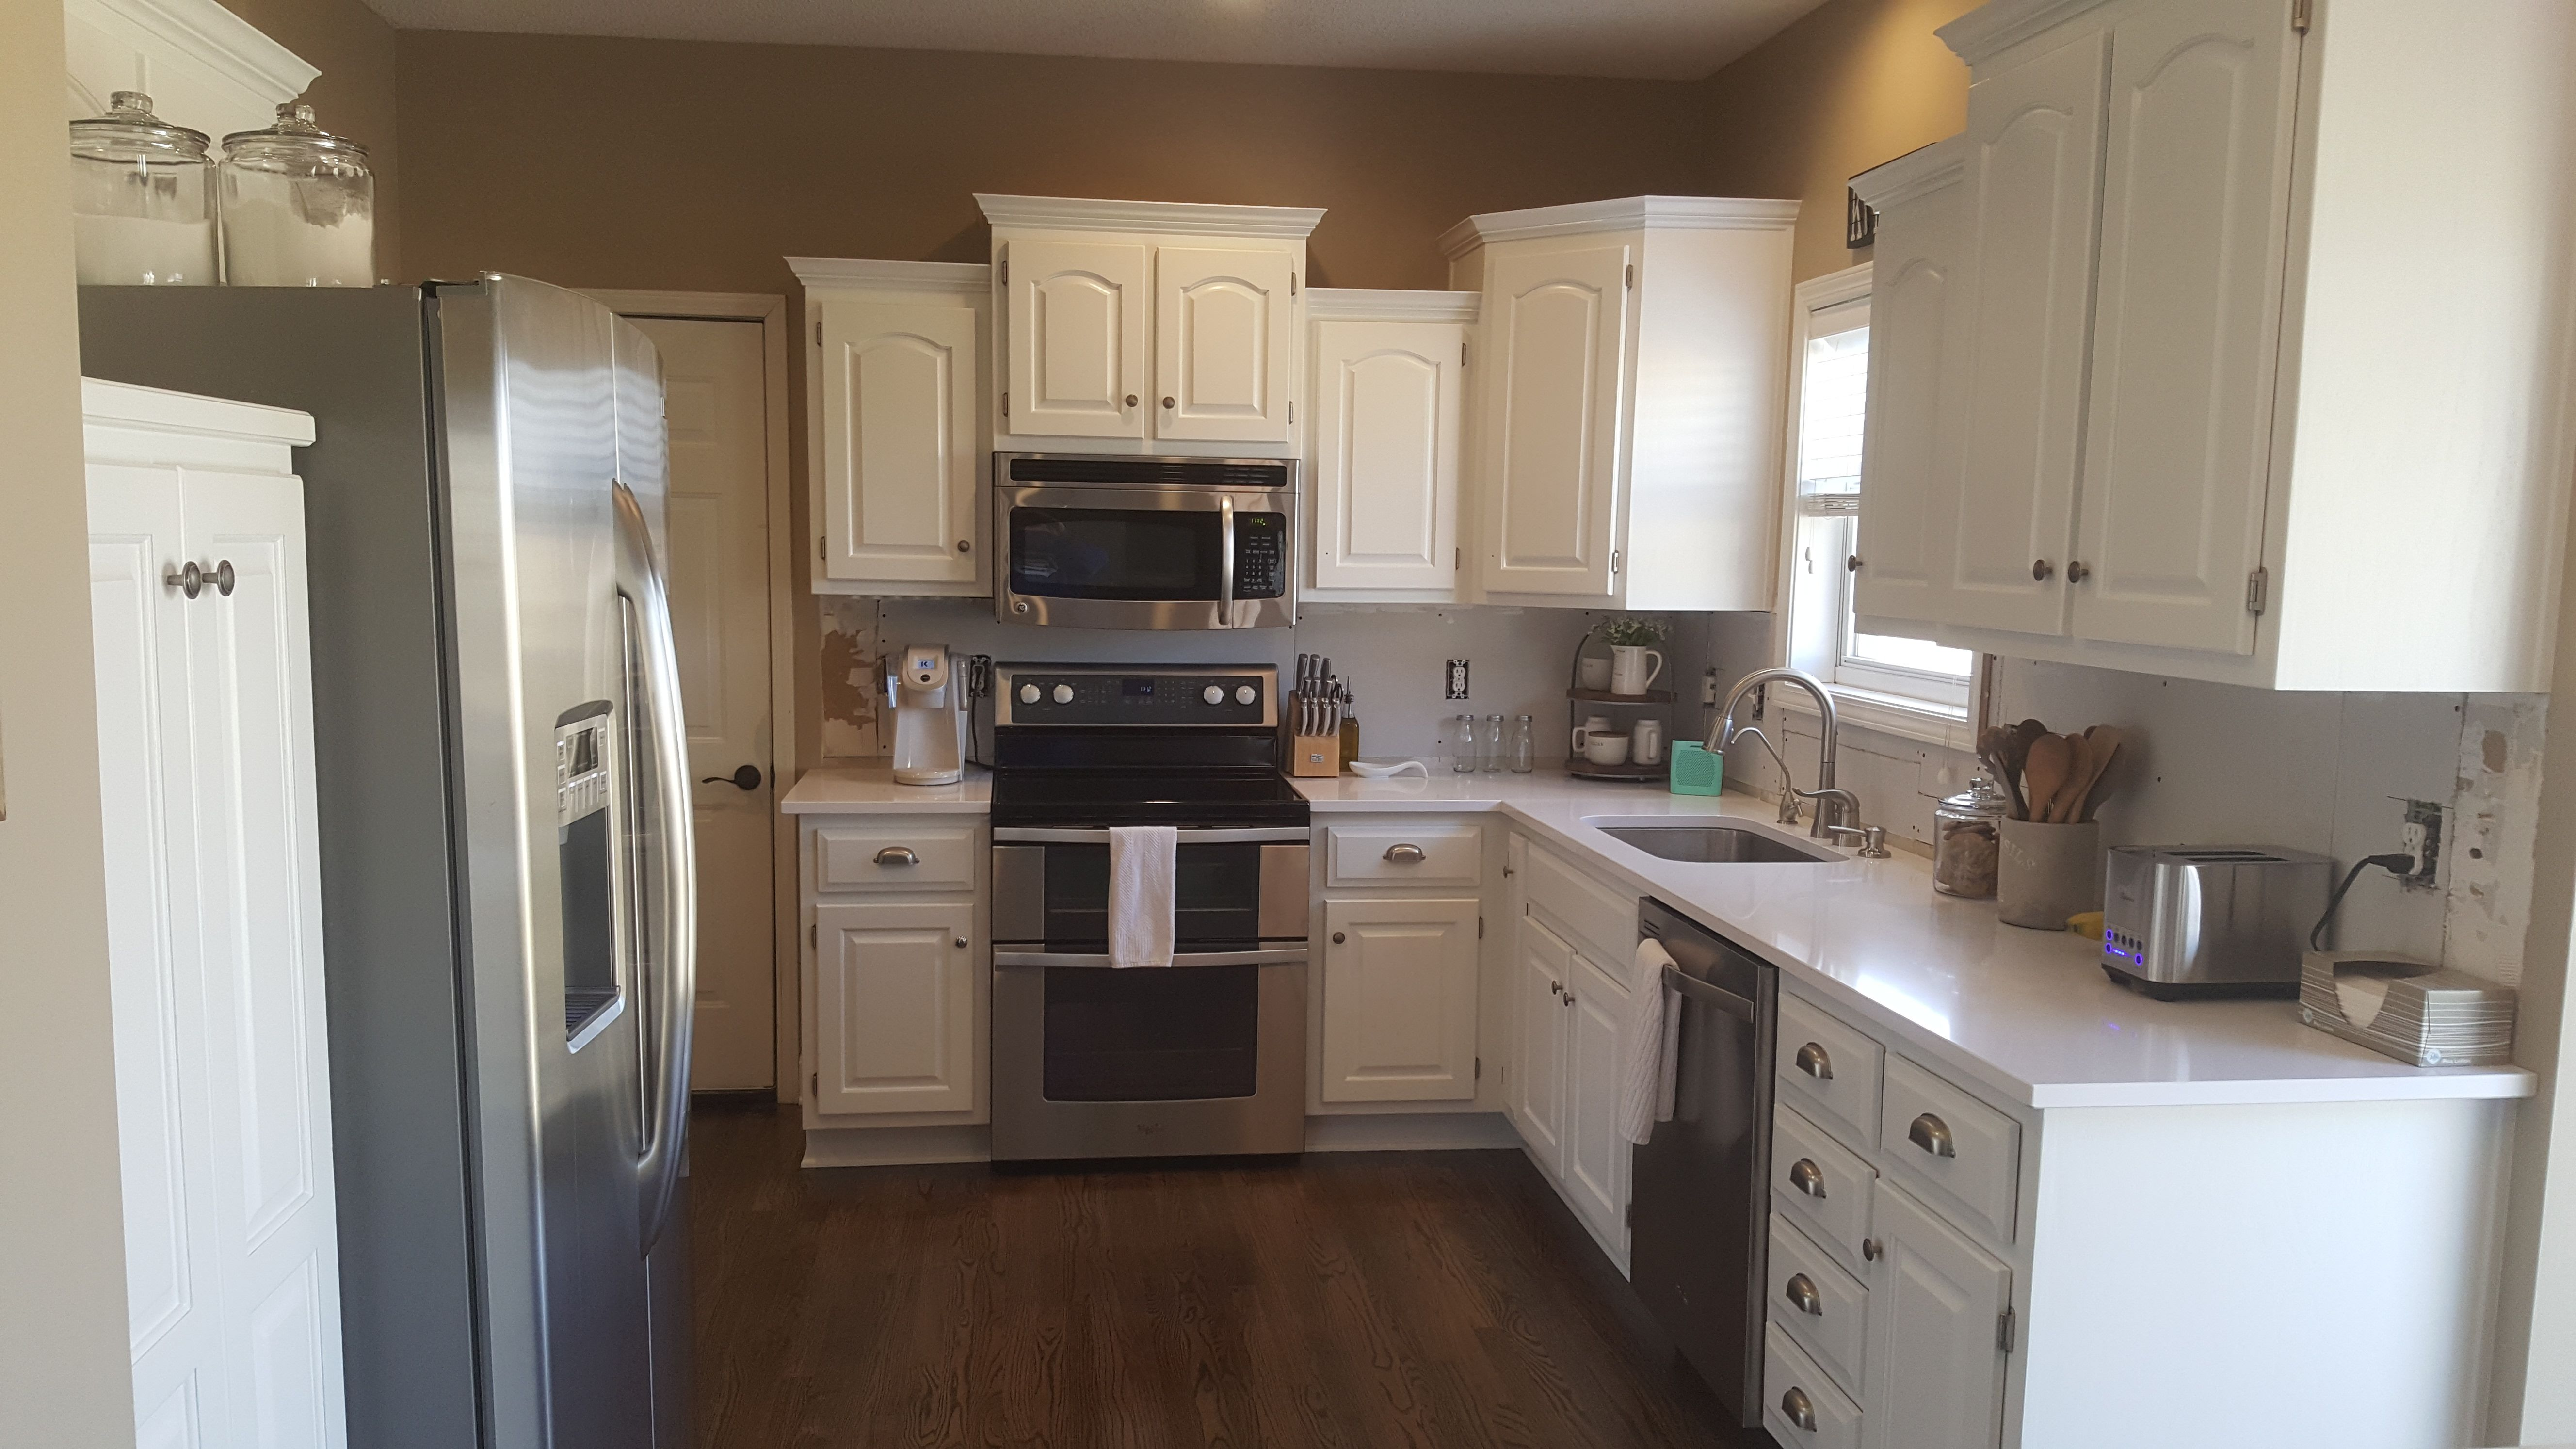 Custom Painted Cabinetry Affordable Cabinets Cabinetry Painting Cabinets